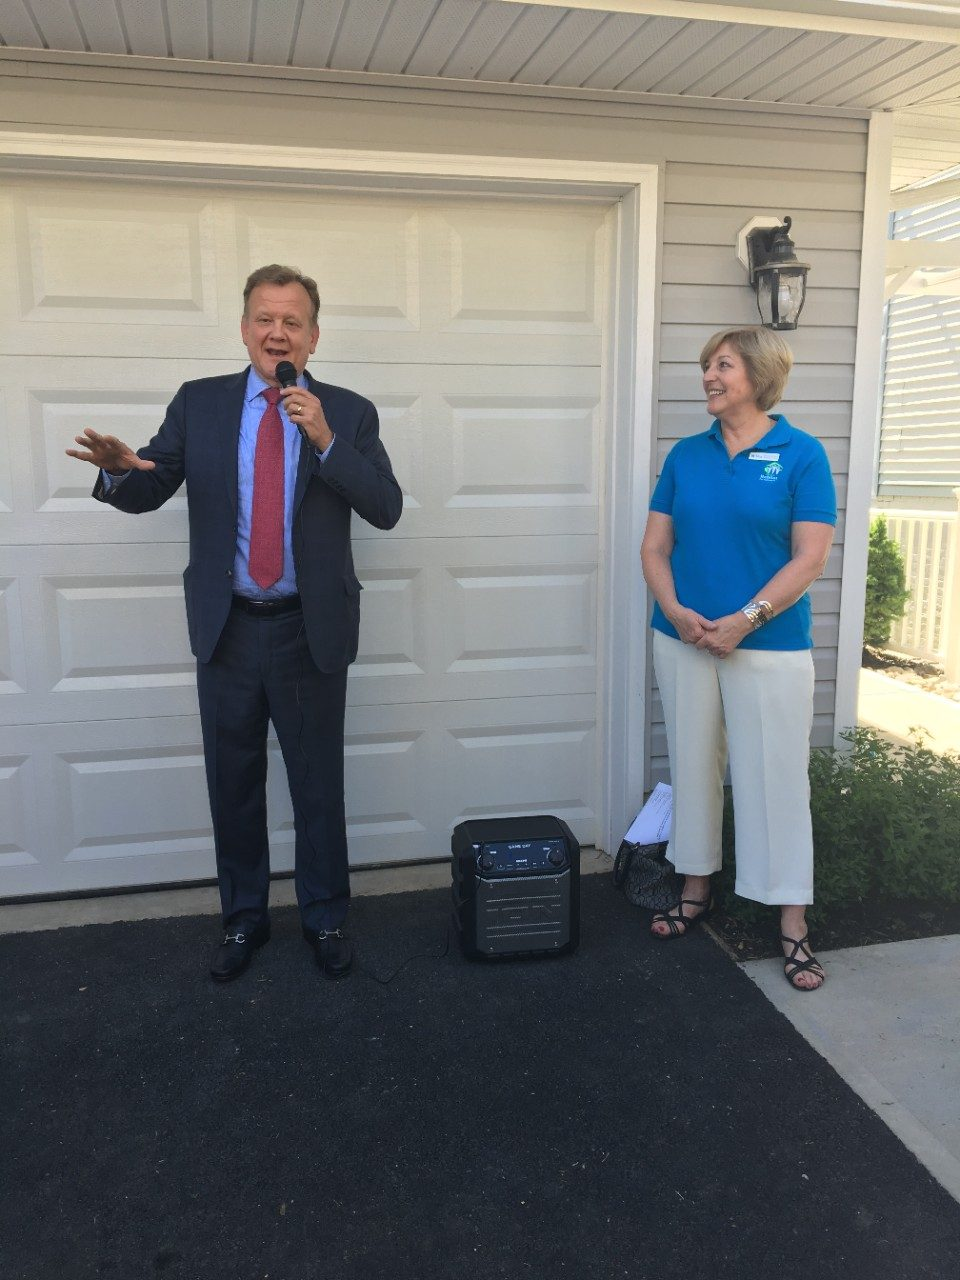 Habitat for Humanity - CEO, U.S. Operations - Schindler, Greg Ergenbright speaks at ribbon cutting ceremony